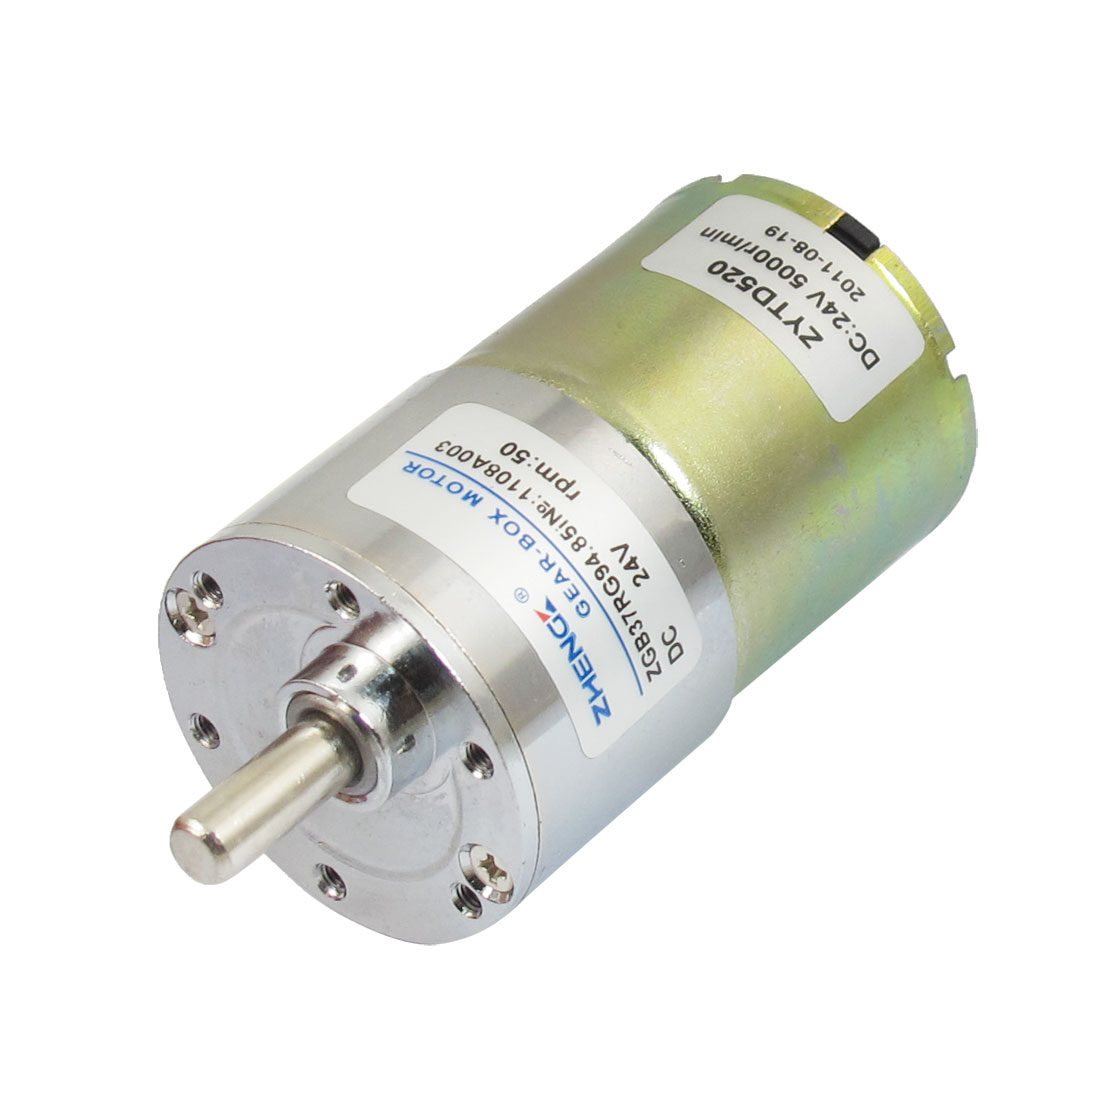 DC 24V 50RPM Output Speed Cylinder Shaped Oven Geared Motor